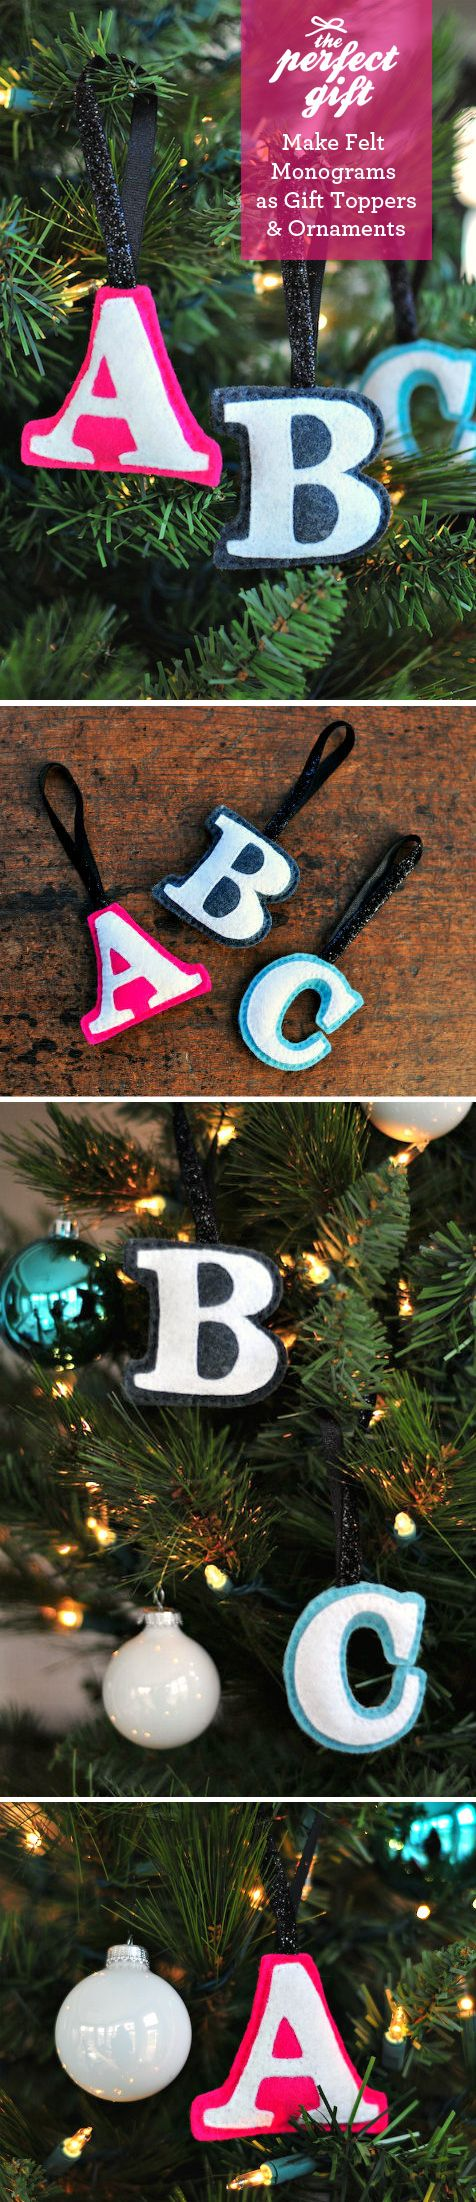 Plaid monograms natural wood ornaments feathers and i couldn t - The Perfect Gift Felt Monogram Ornaments Diy Gift Ornaments Christmas